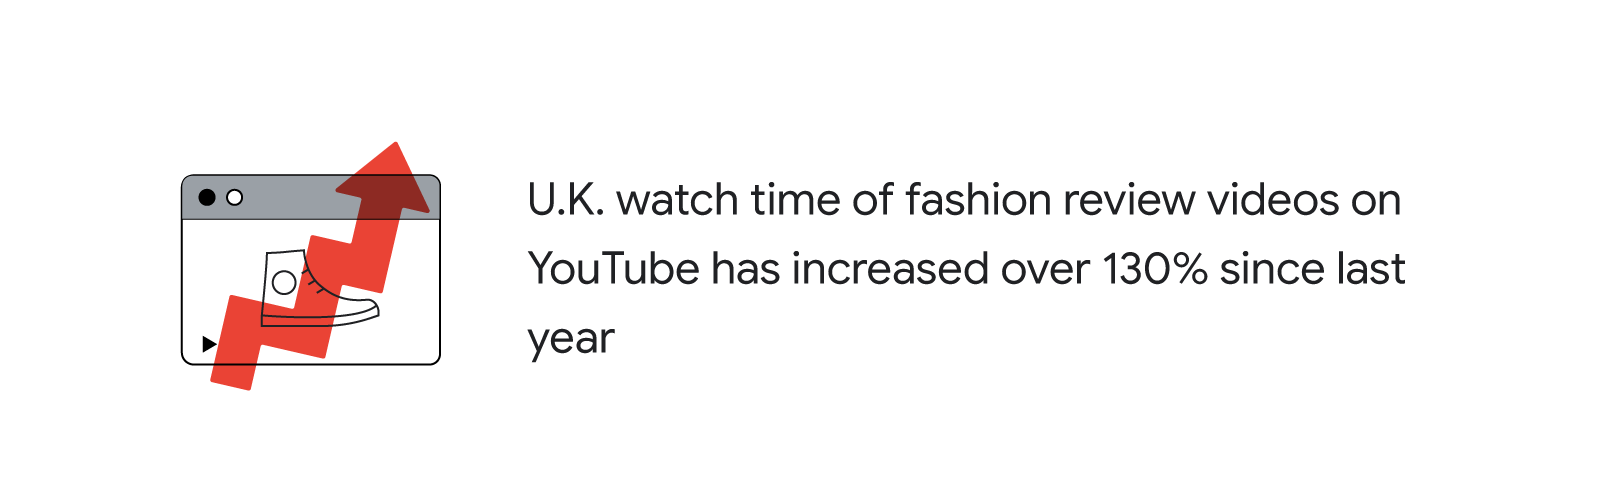 What marketers can learn from what the U.K. watches on YouTube